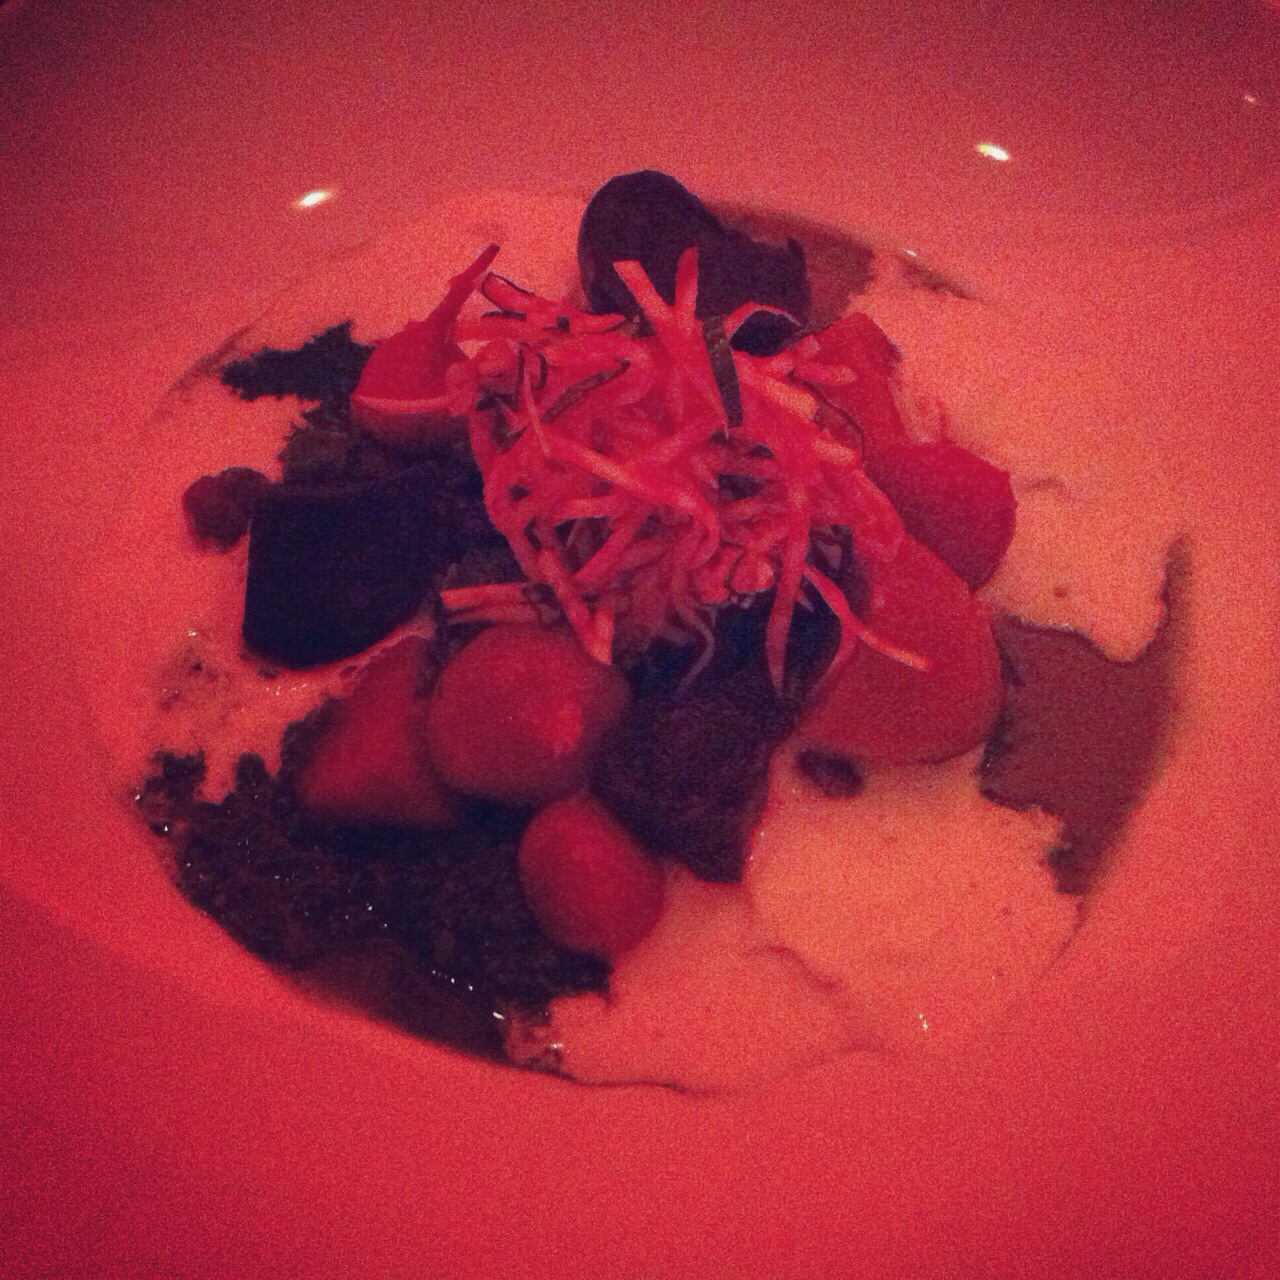 Beets, Dirt Candy